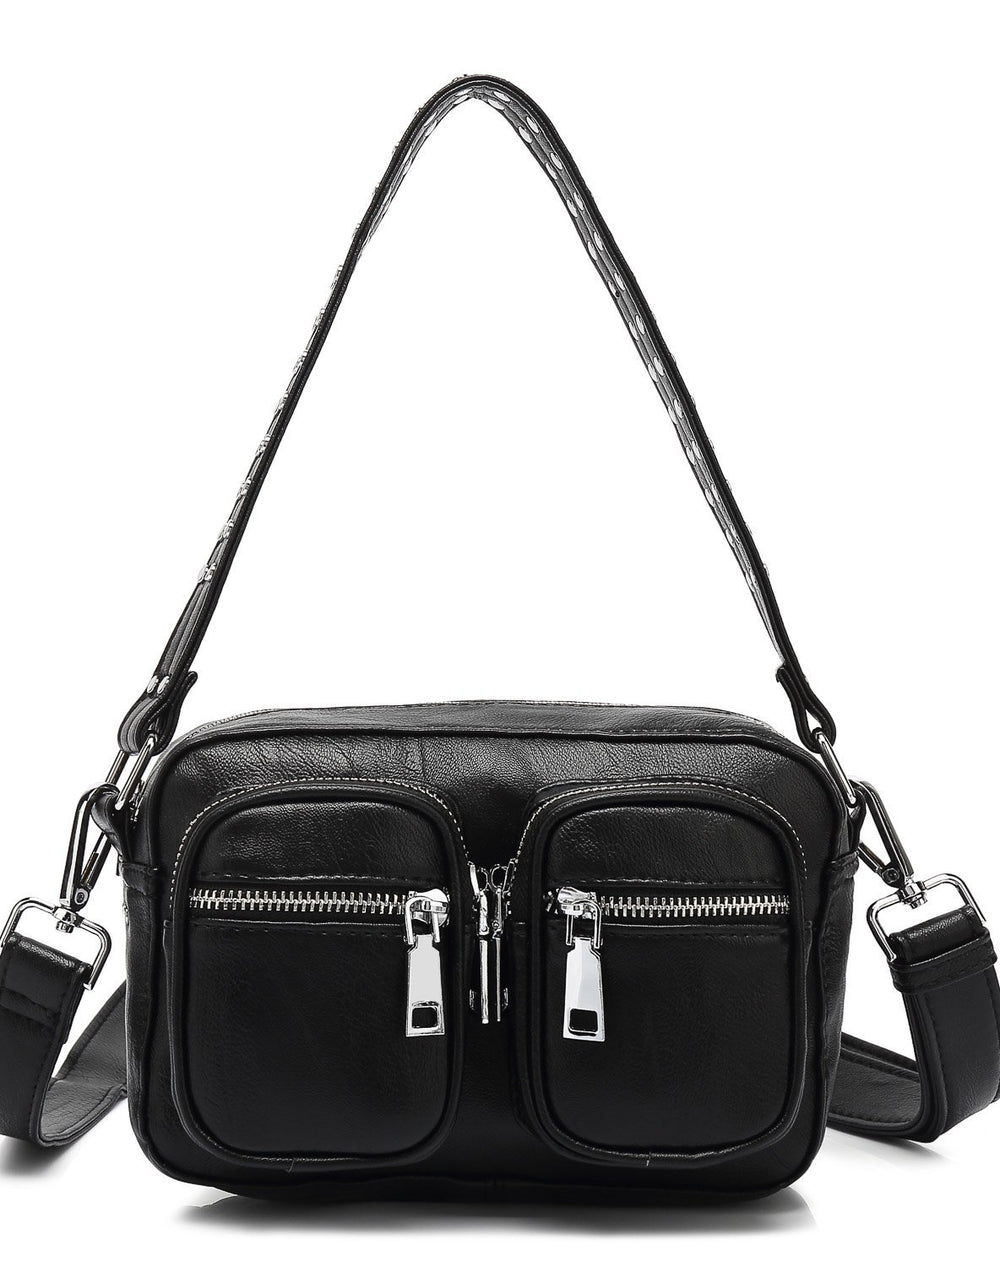 Noella Kendra bag real leather black - Online-Mode